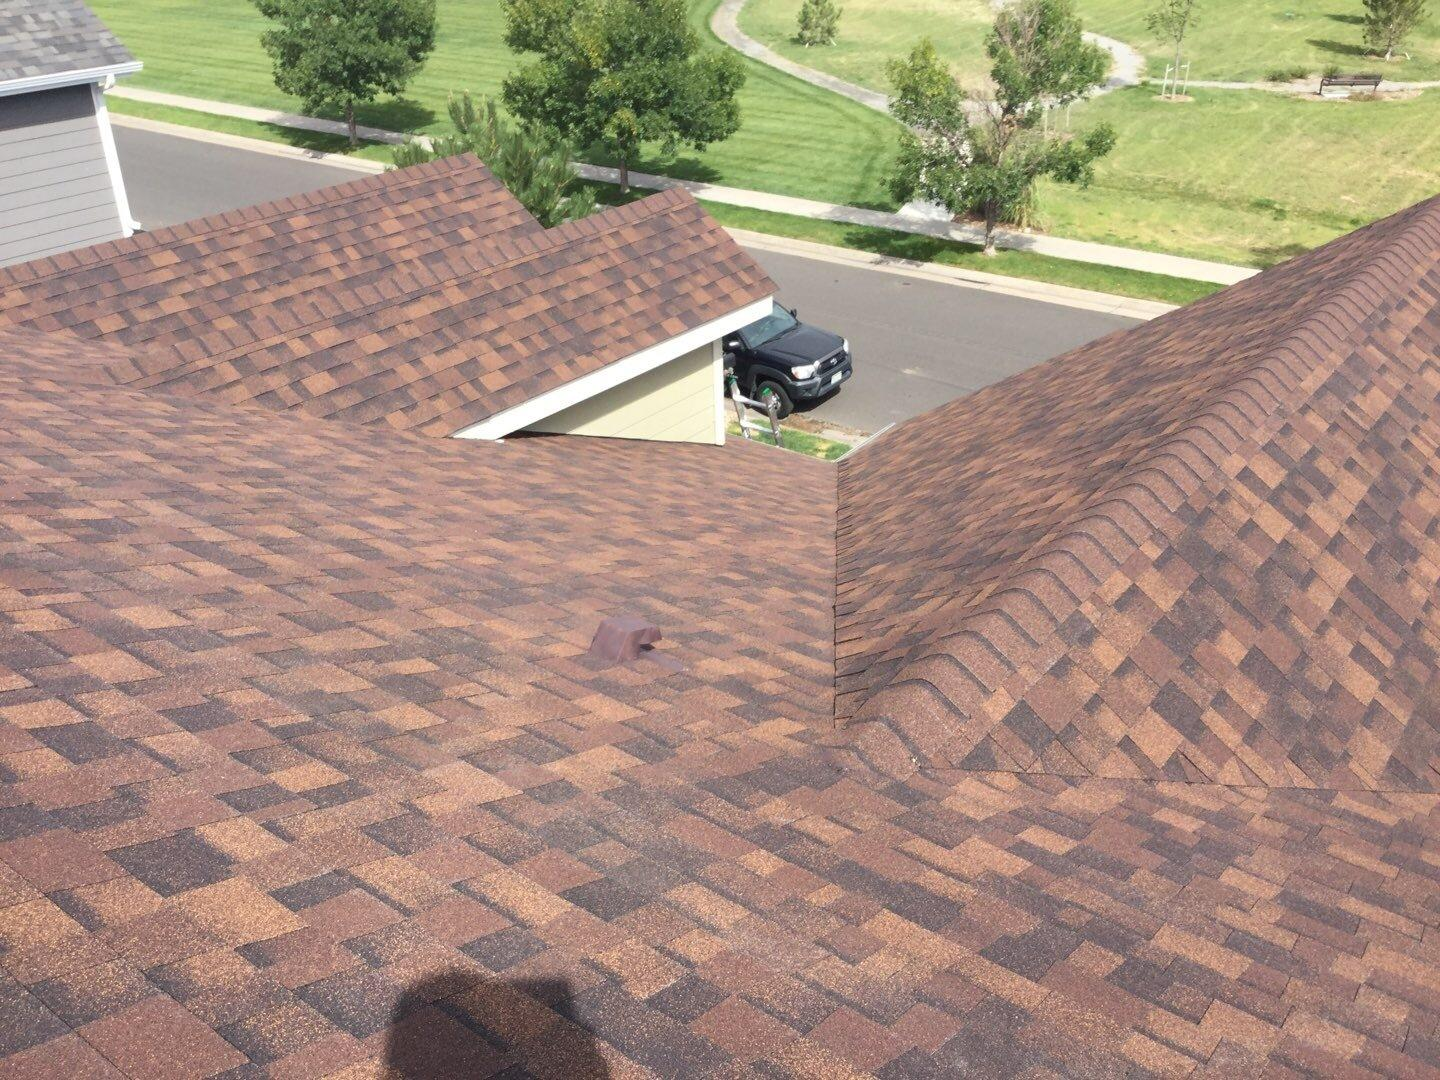 Brighton, CO Owens Corning Roof Replacement - After Photo